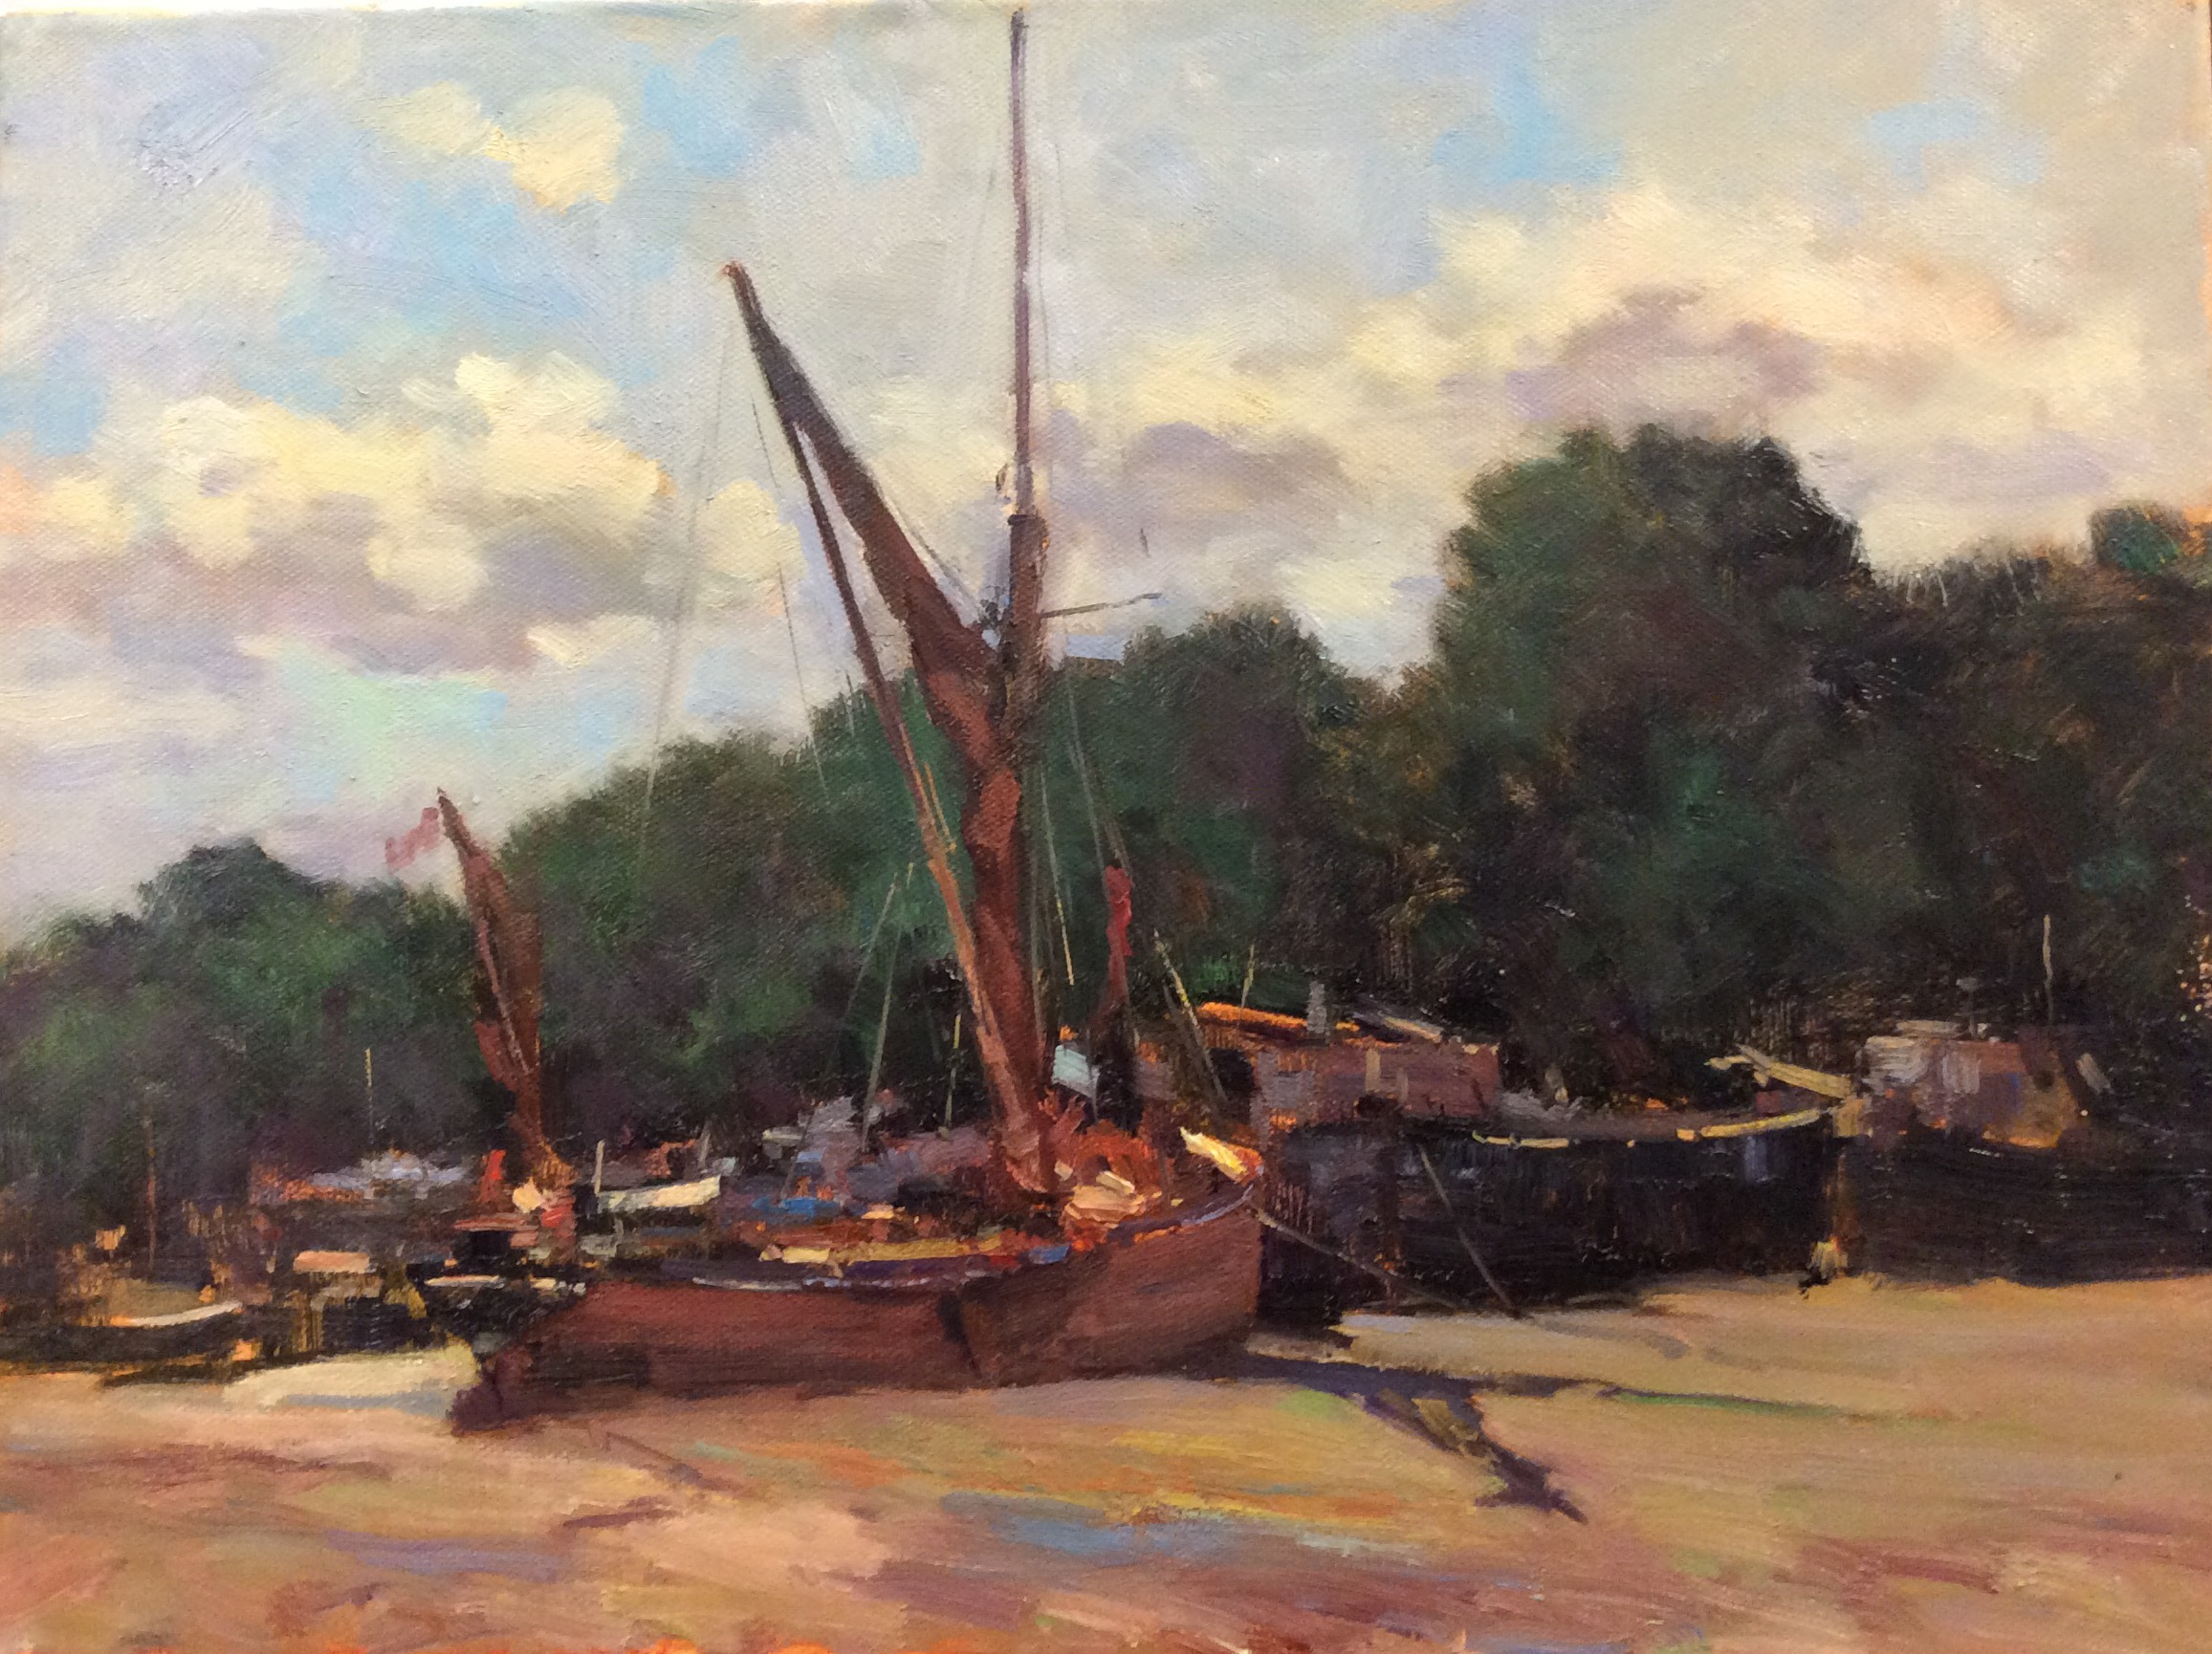 MELISSA AT PIN MILL:  12 x 16 in: Oil on canvas